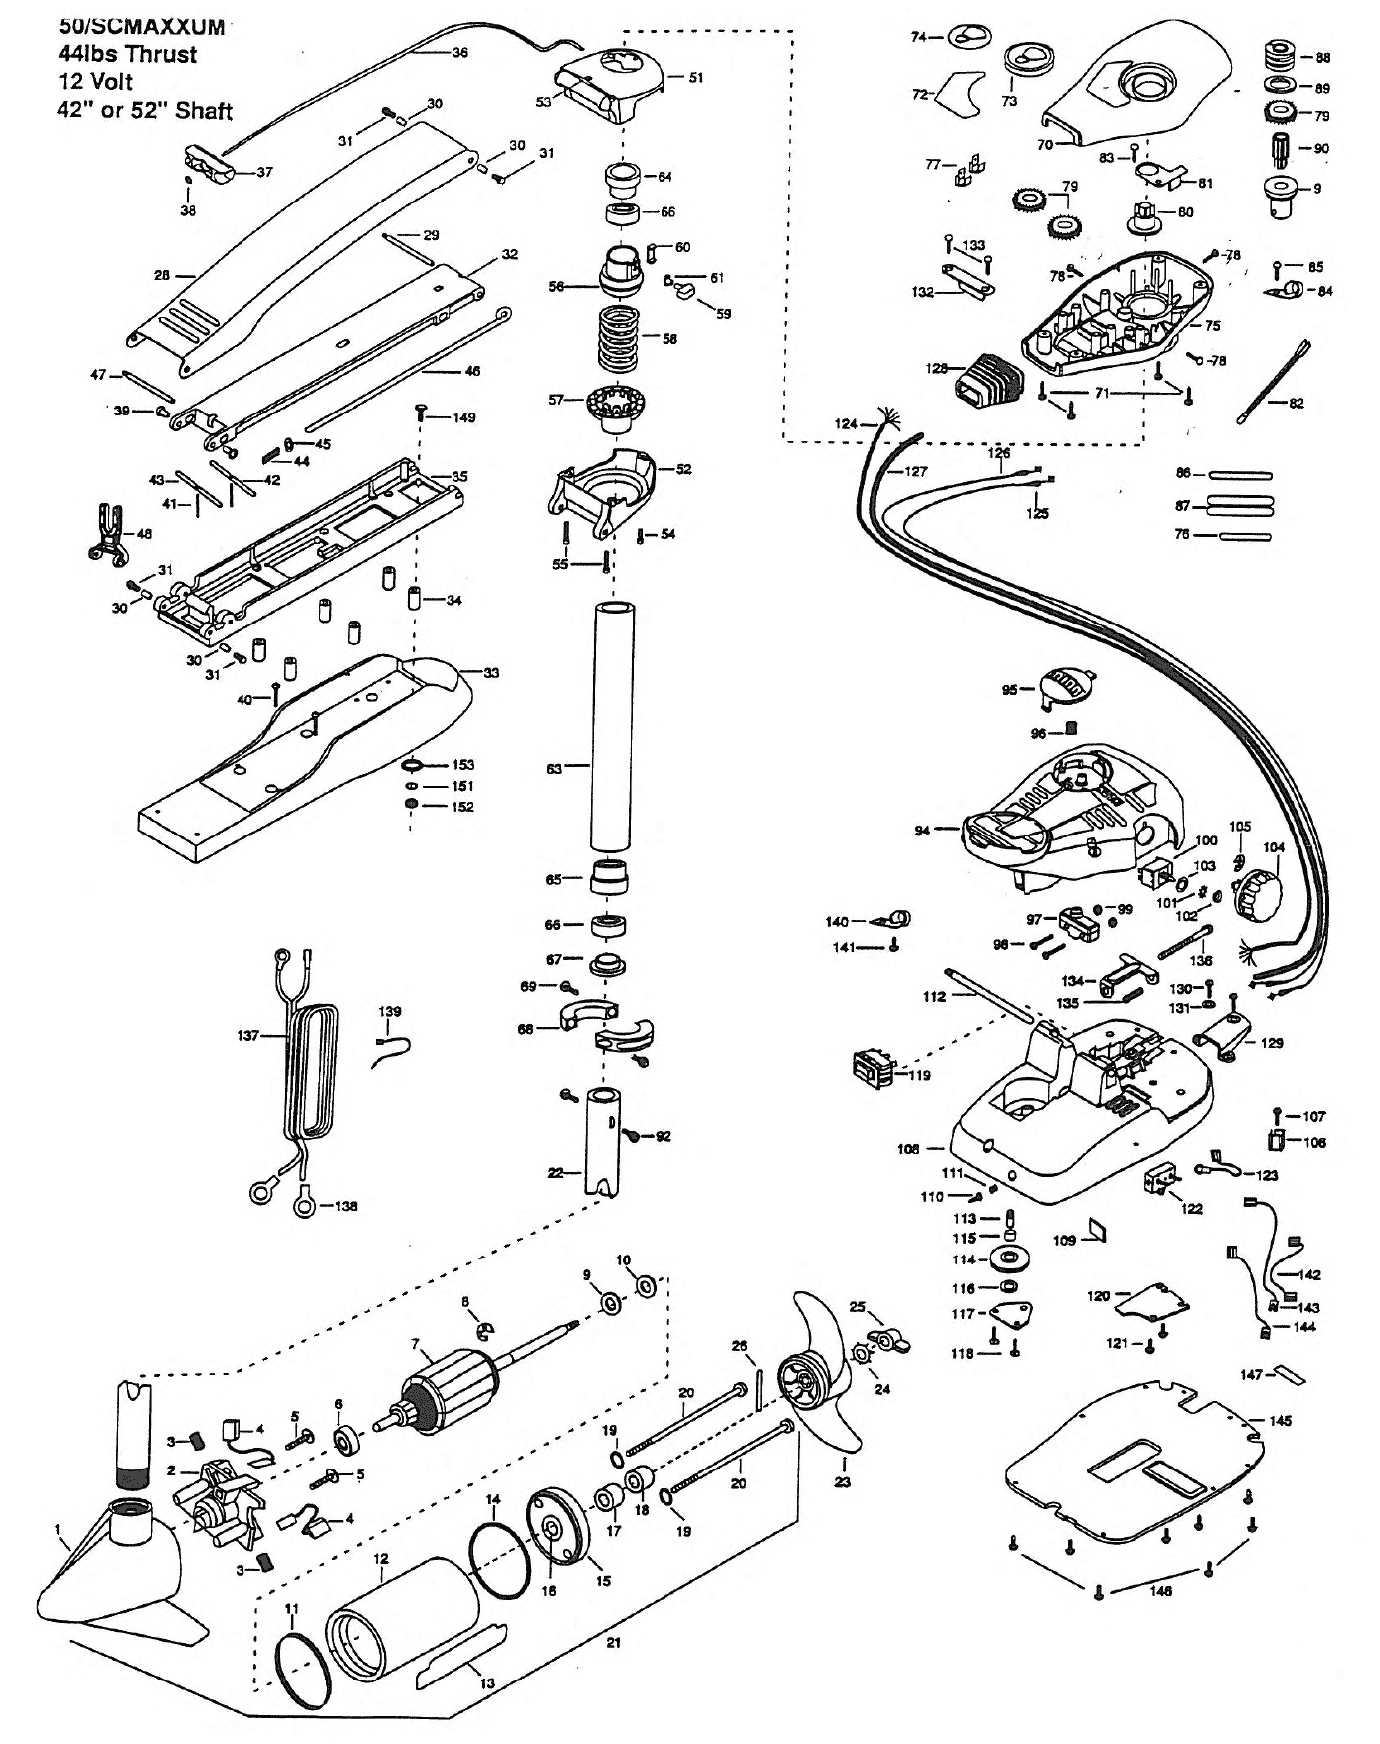 Motor Guide 45 Lb Thrust Wiring Diagram